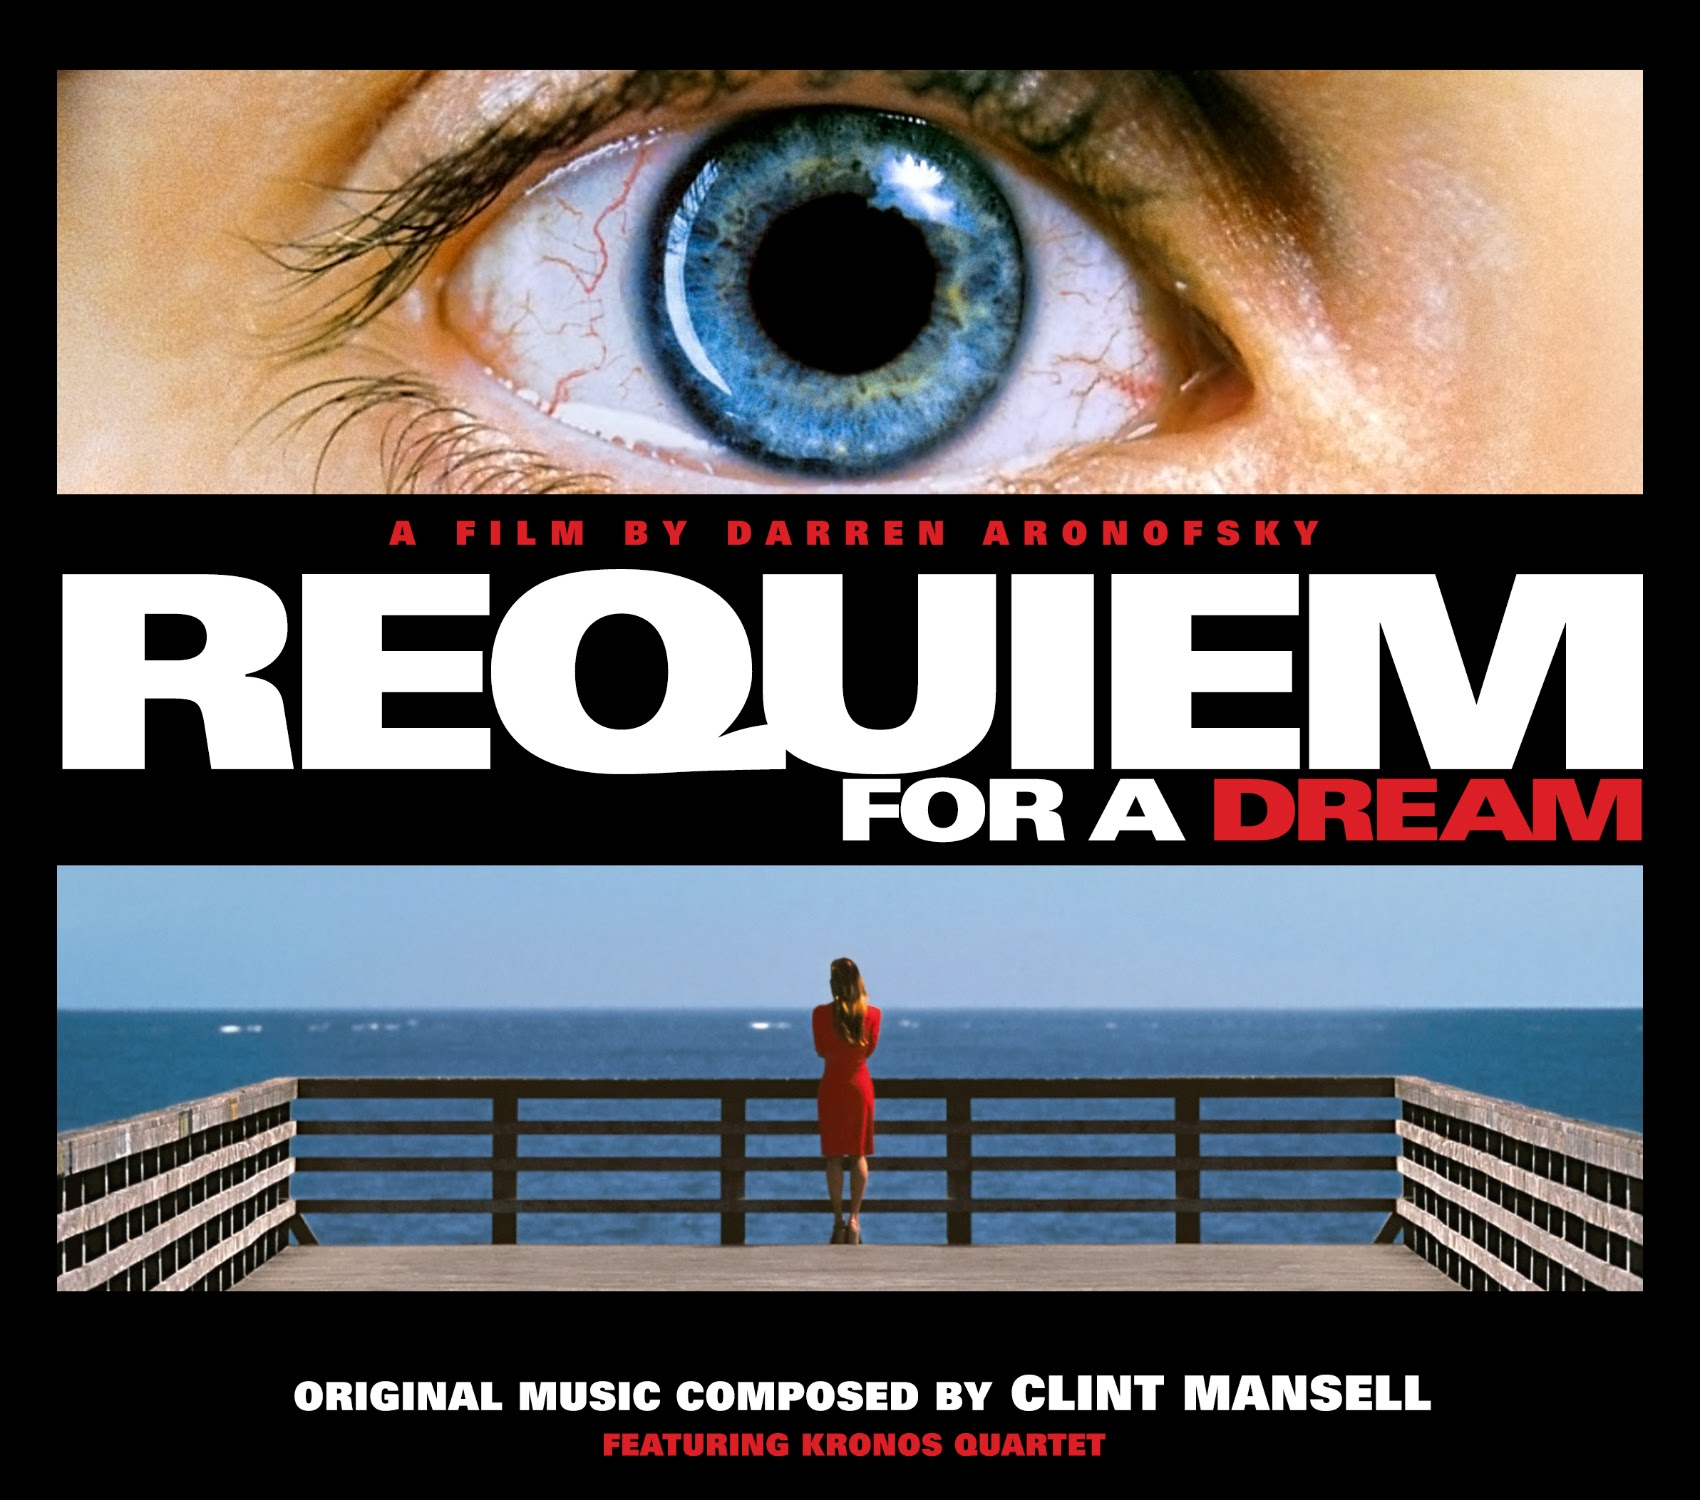 Album Artist: Clint Mansell featuring Kronos Quartet / Album Title: Requiem for a Dream (Original Music Composed by Clint Mansell featuring Kronos Quartet) [Original Slip Box Album Art]